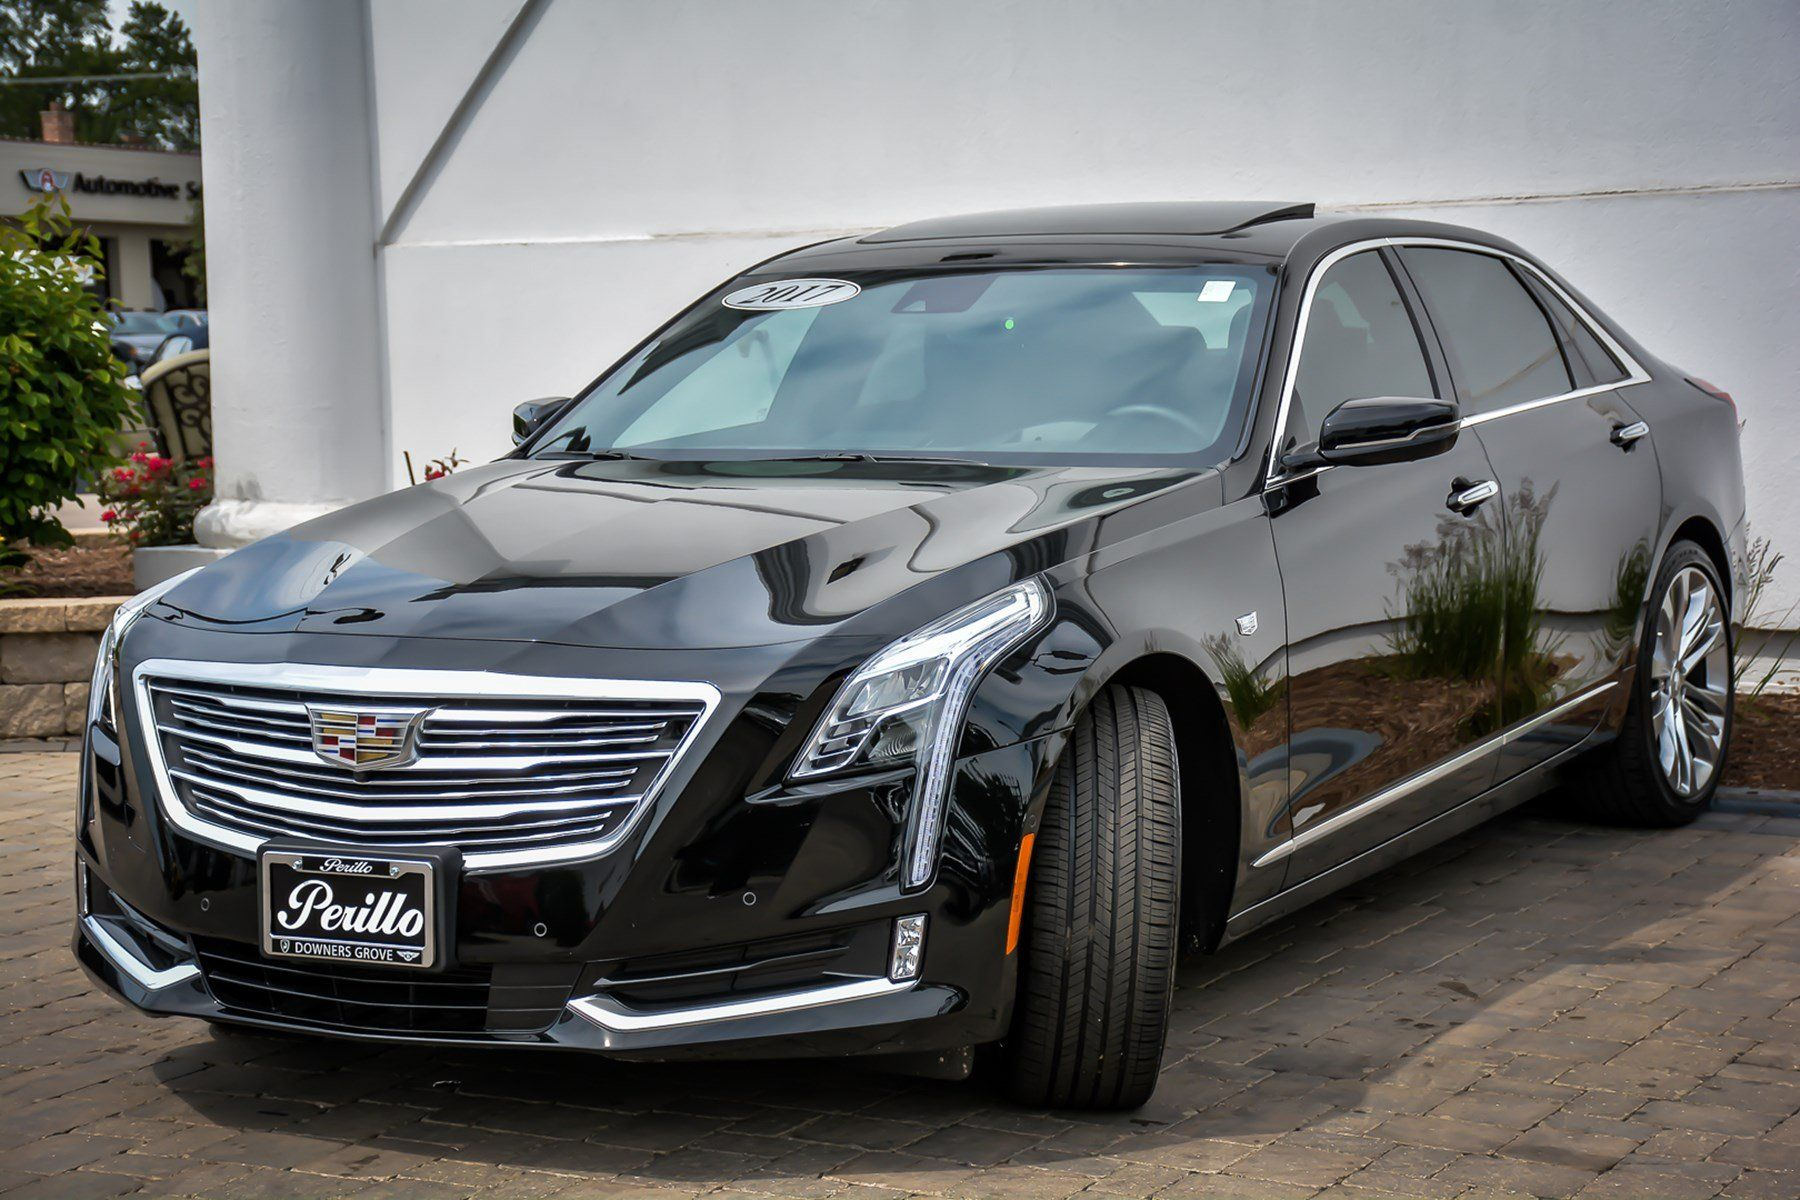 New Vehicles 2017 >> New Vehicle Inventory Luxury Cars Cadillac Ct6 Cadillac